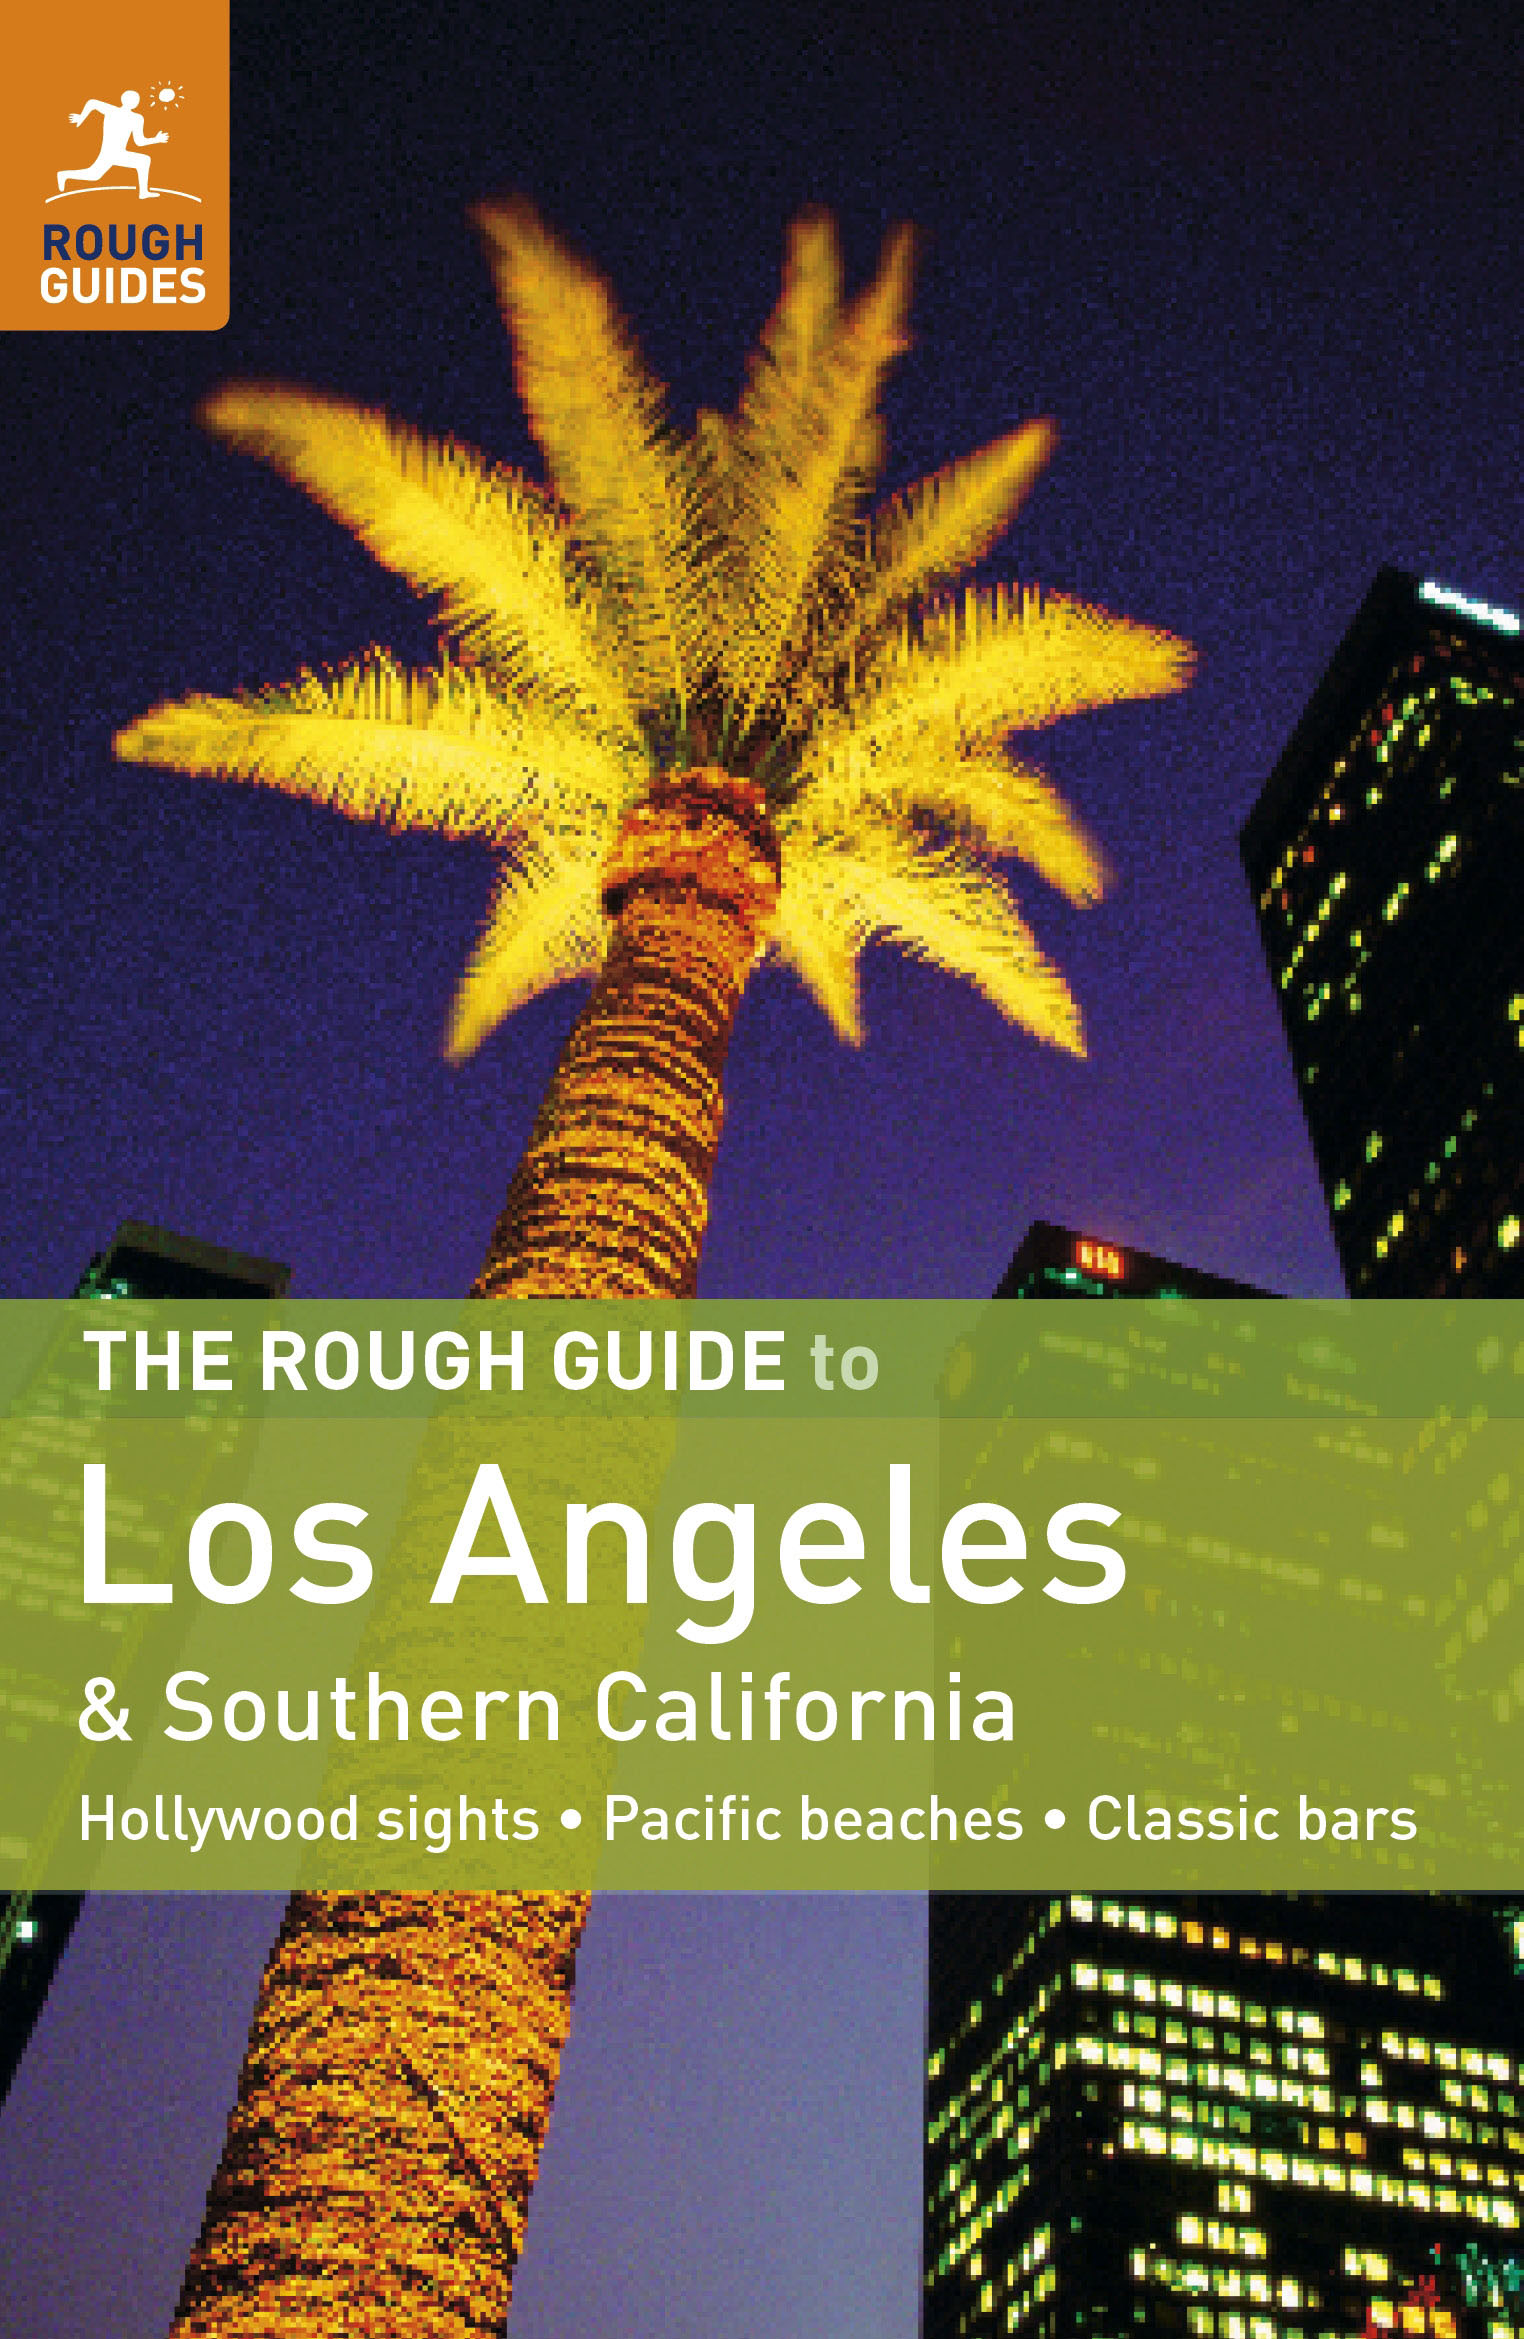 Los Angeles & Southern California 2